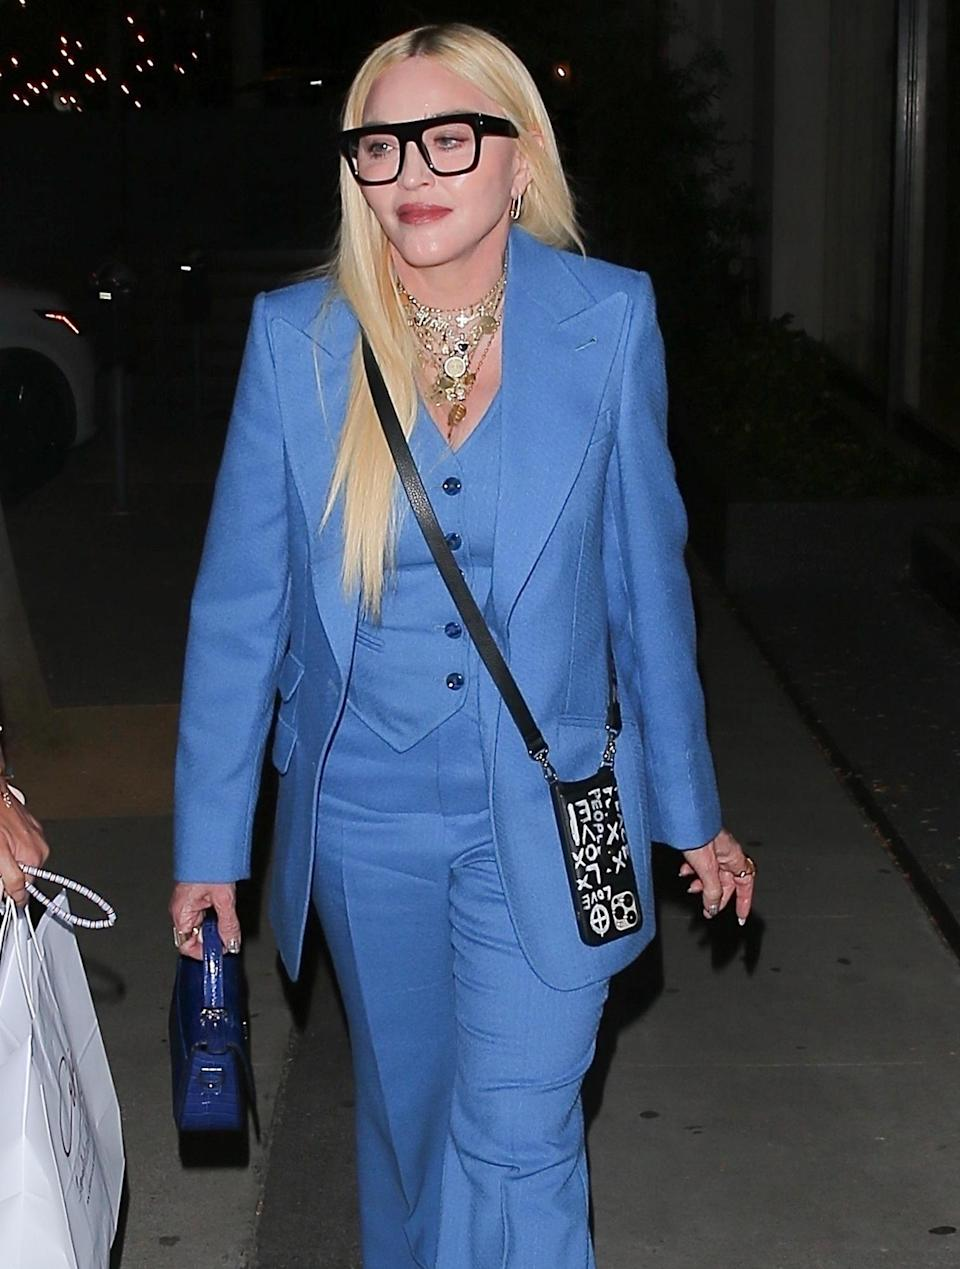 <p>Madonna sports a blue three-piece suit while out after dinner at Craig's in West Hollywood on Tuesday.</p>